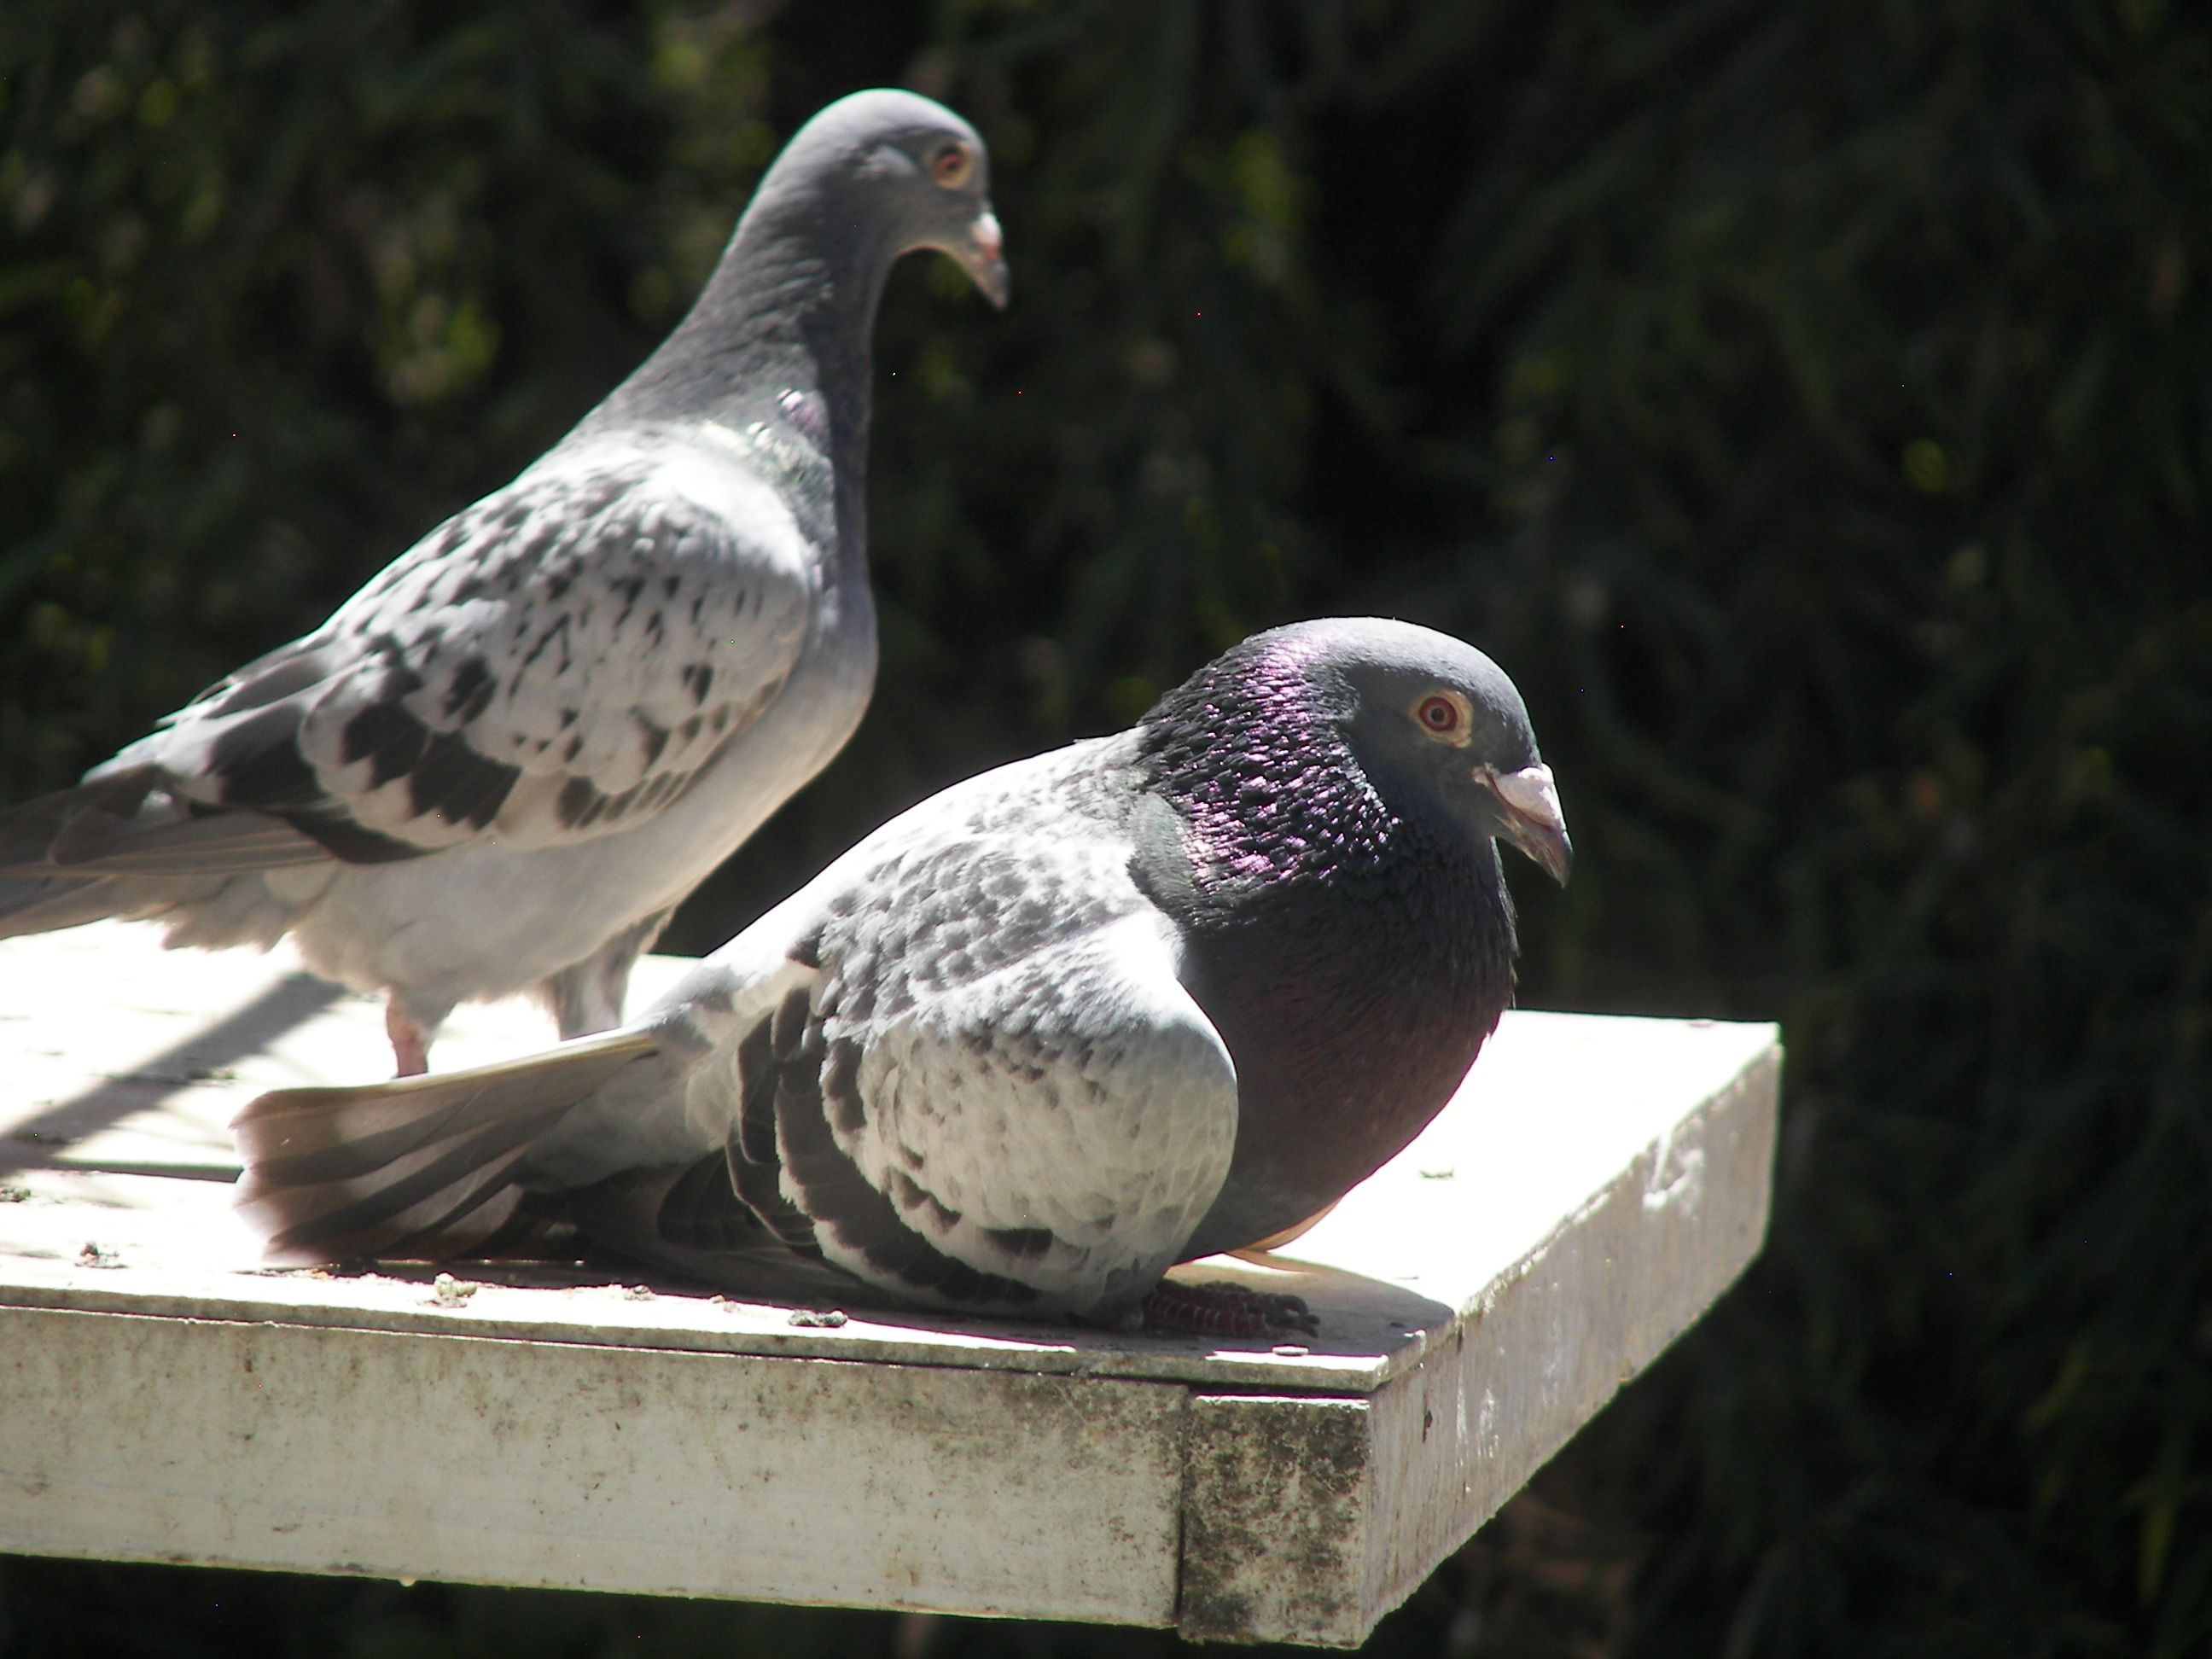 Racing pigeons relaxing in the sun. This picture was taken